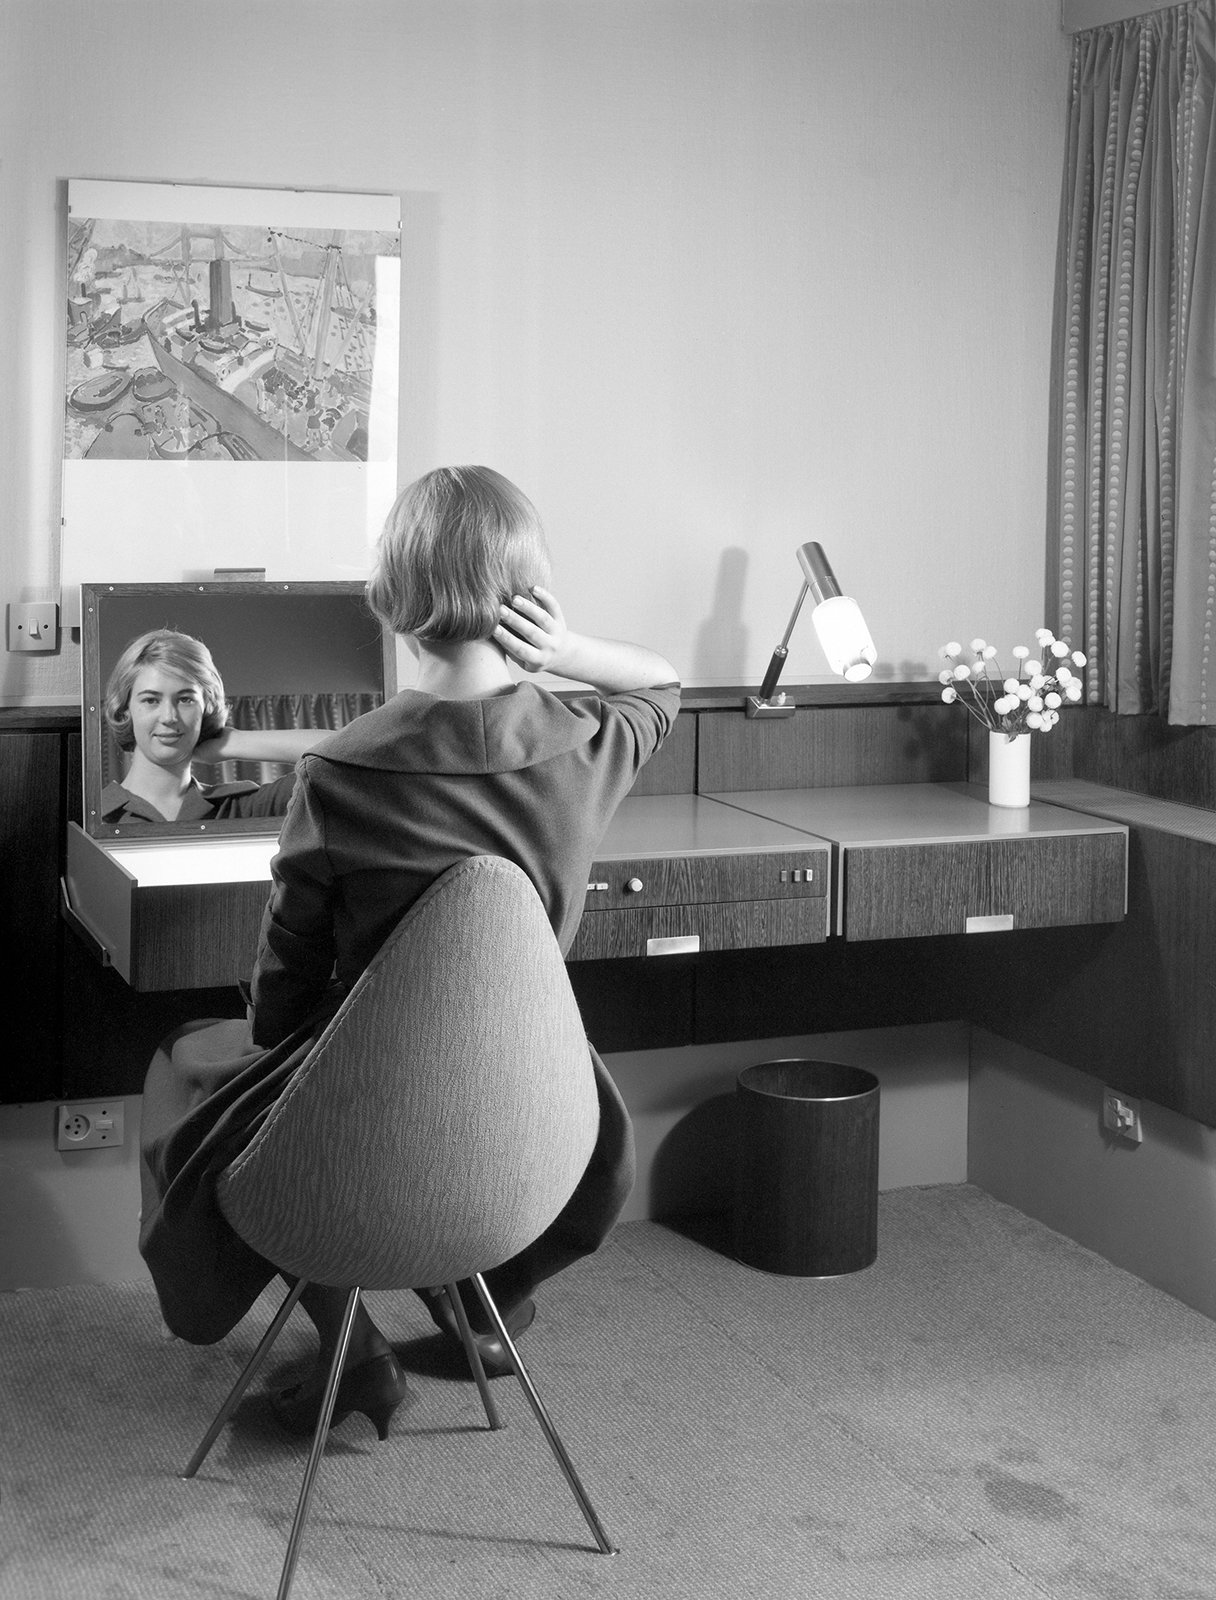 Arne Jacobsen designed nearly every element of the hotel, including the built-ins, textiles, and accessories. In addition to furnishing the rooms with existing pieces from his portfolio, Jacobsen created new pieces for the hotel, like the Drop chair shown in this archival photo.  Photo 4 of 10 in Jaime Hayon is Given the Keys to an Iconic Copenhagen Hotel